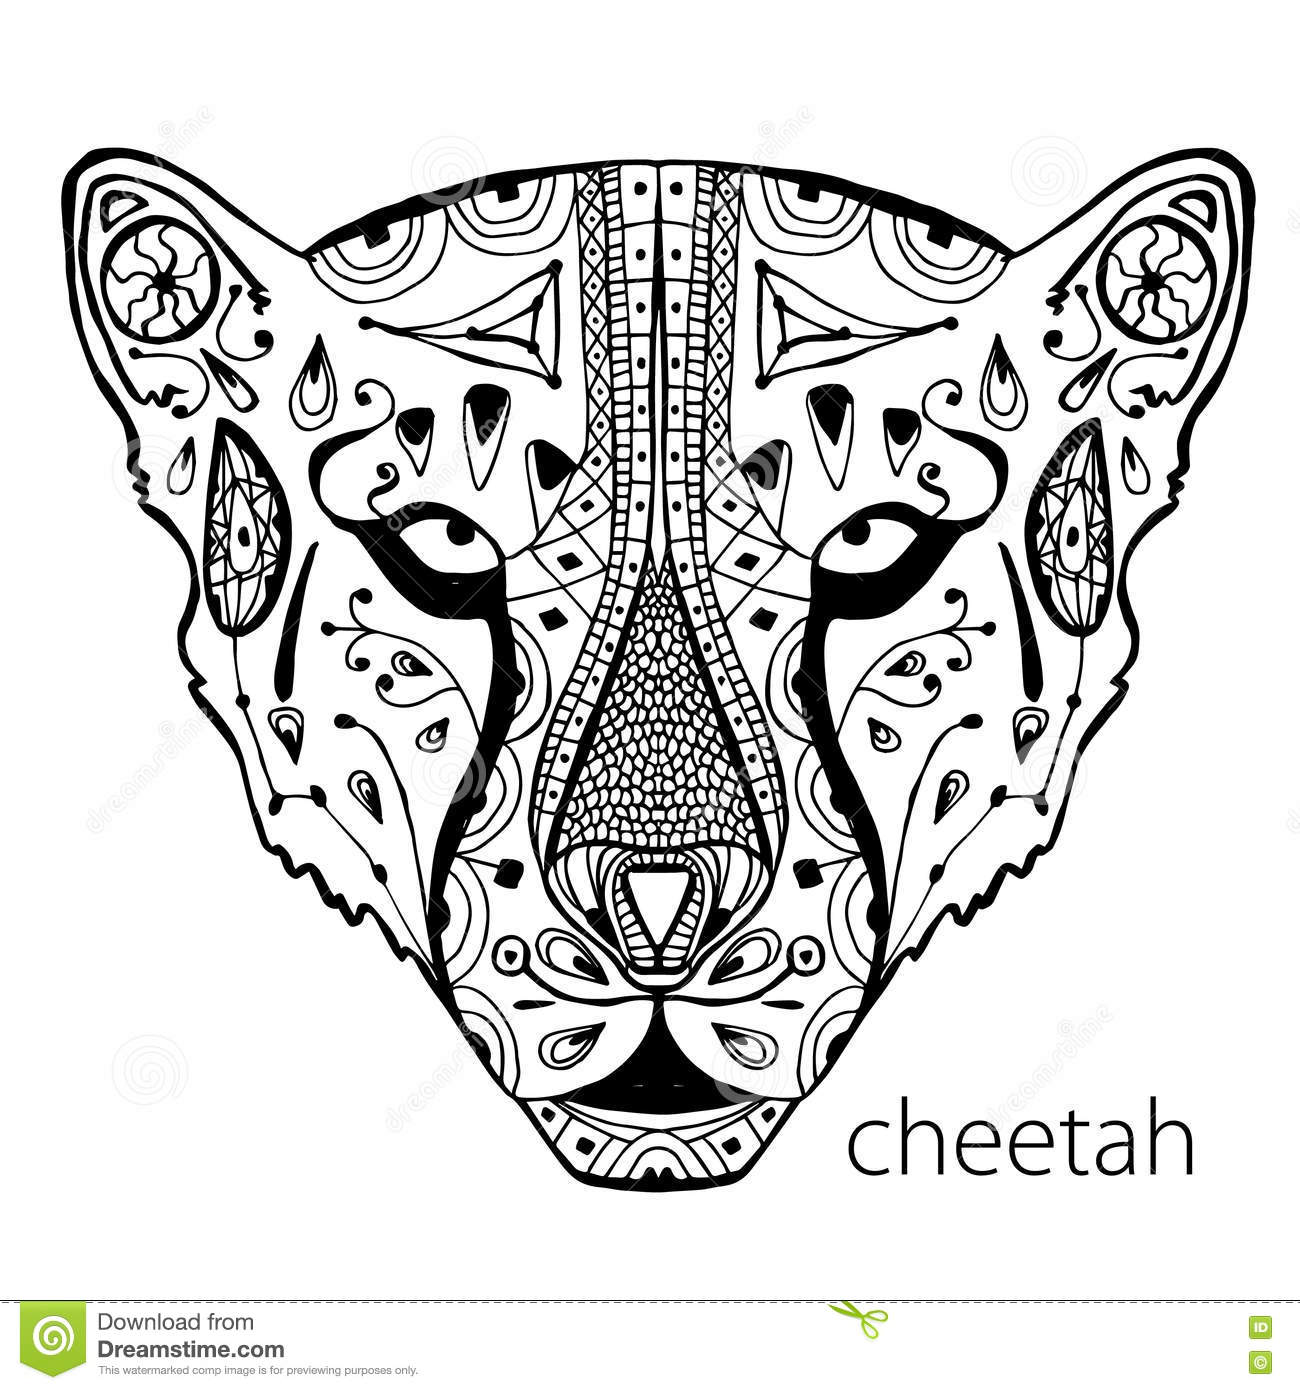 Download The Black And White Cheetah Print With Ethnic Patterns Coloring Book For Adults Antistress